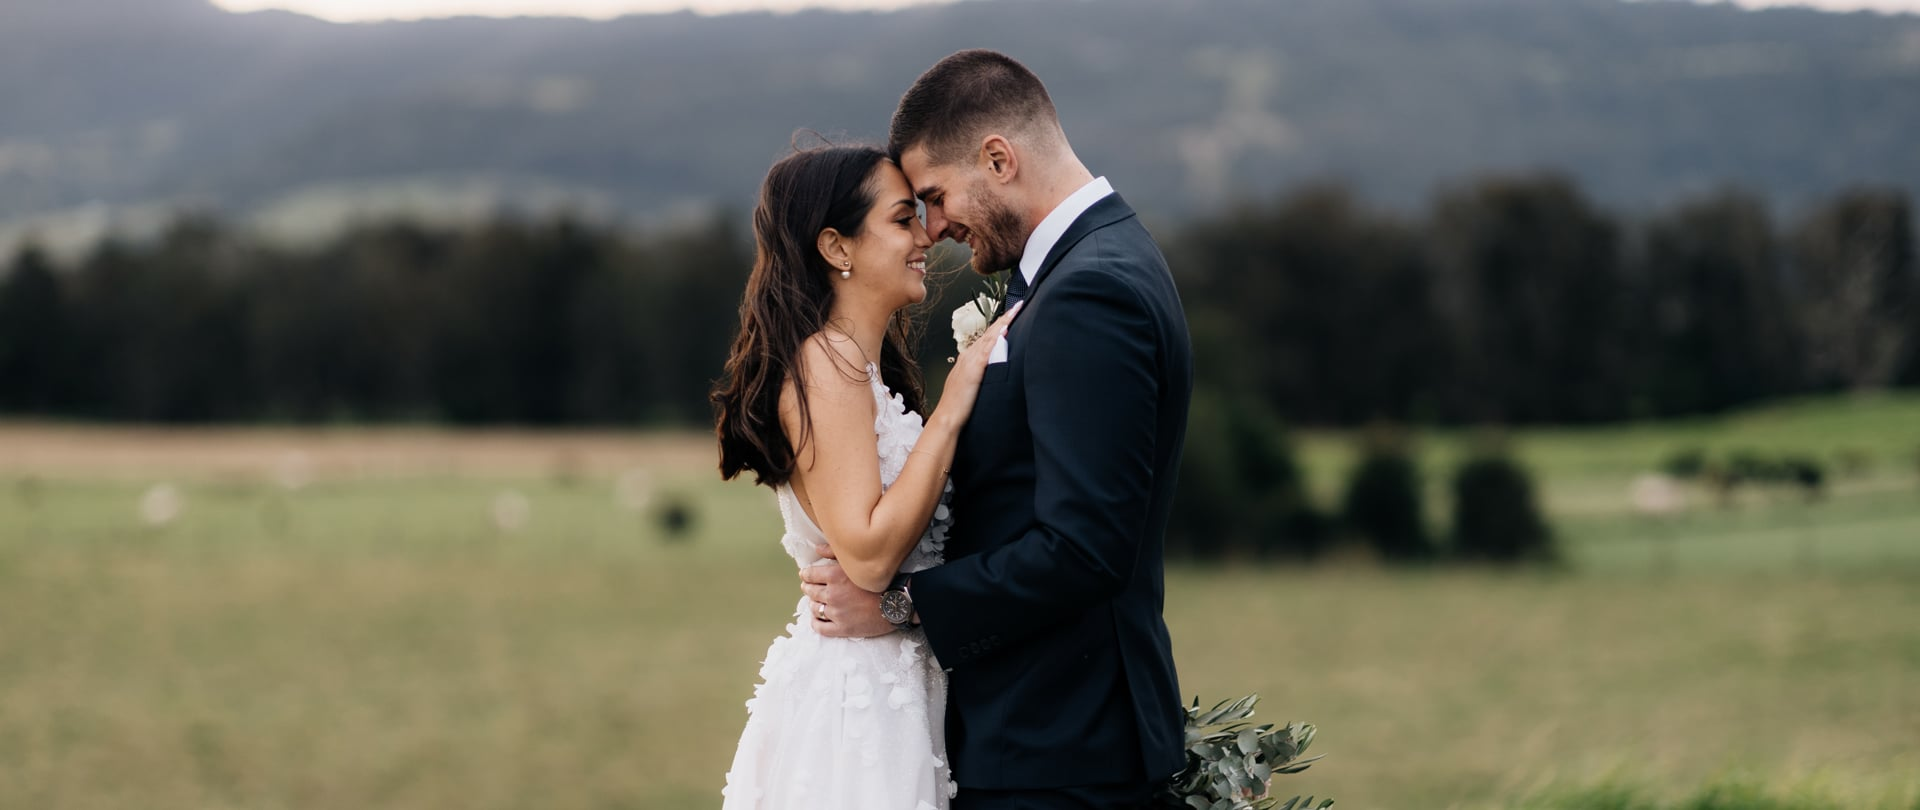 Alana & Arky Wedding Video Filmed at Berry, New South Wales